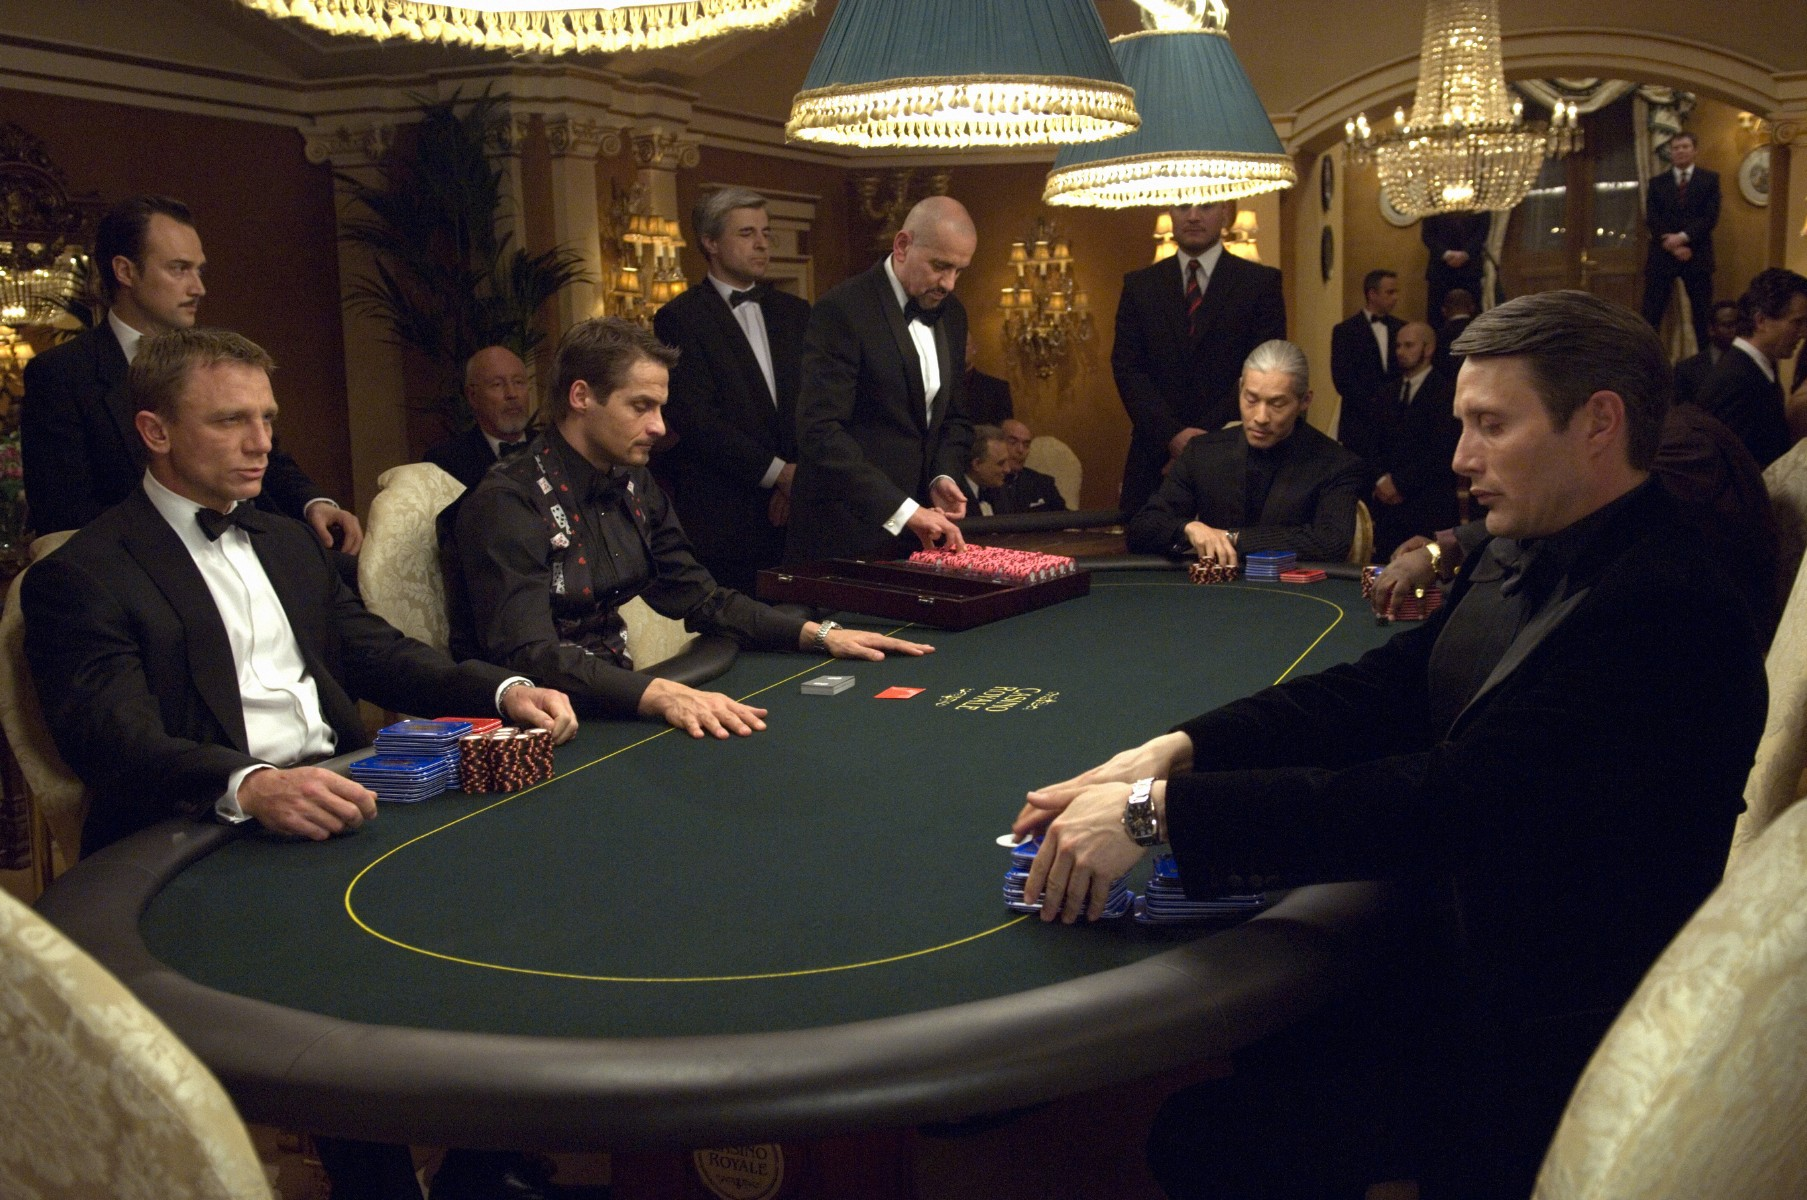 baccarat casino royale